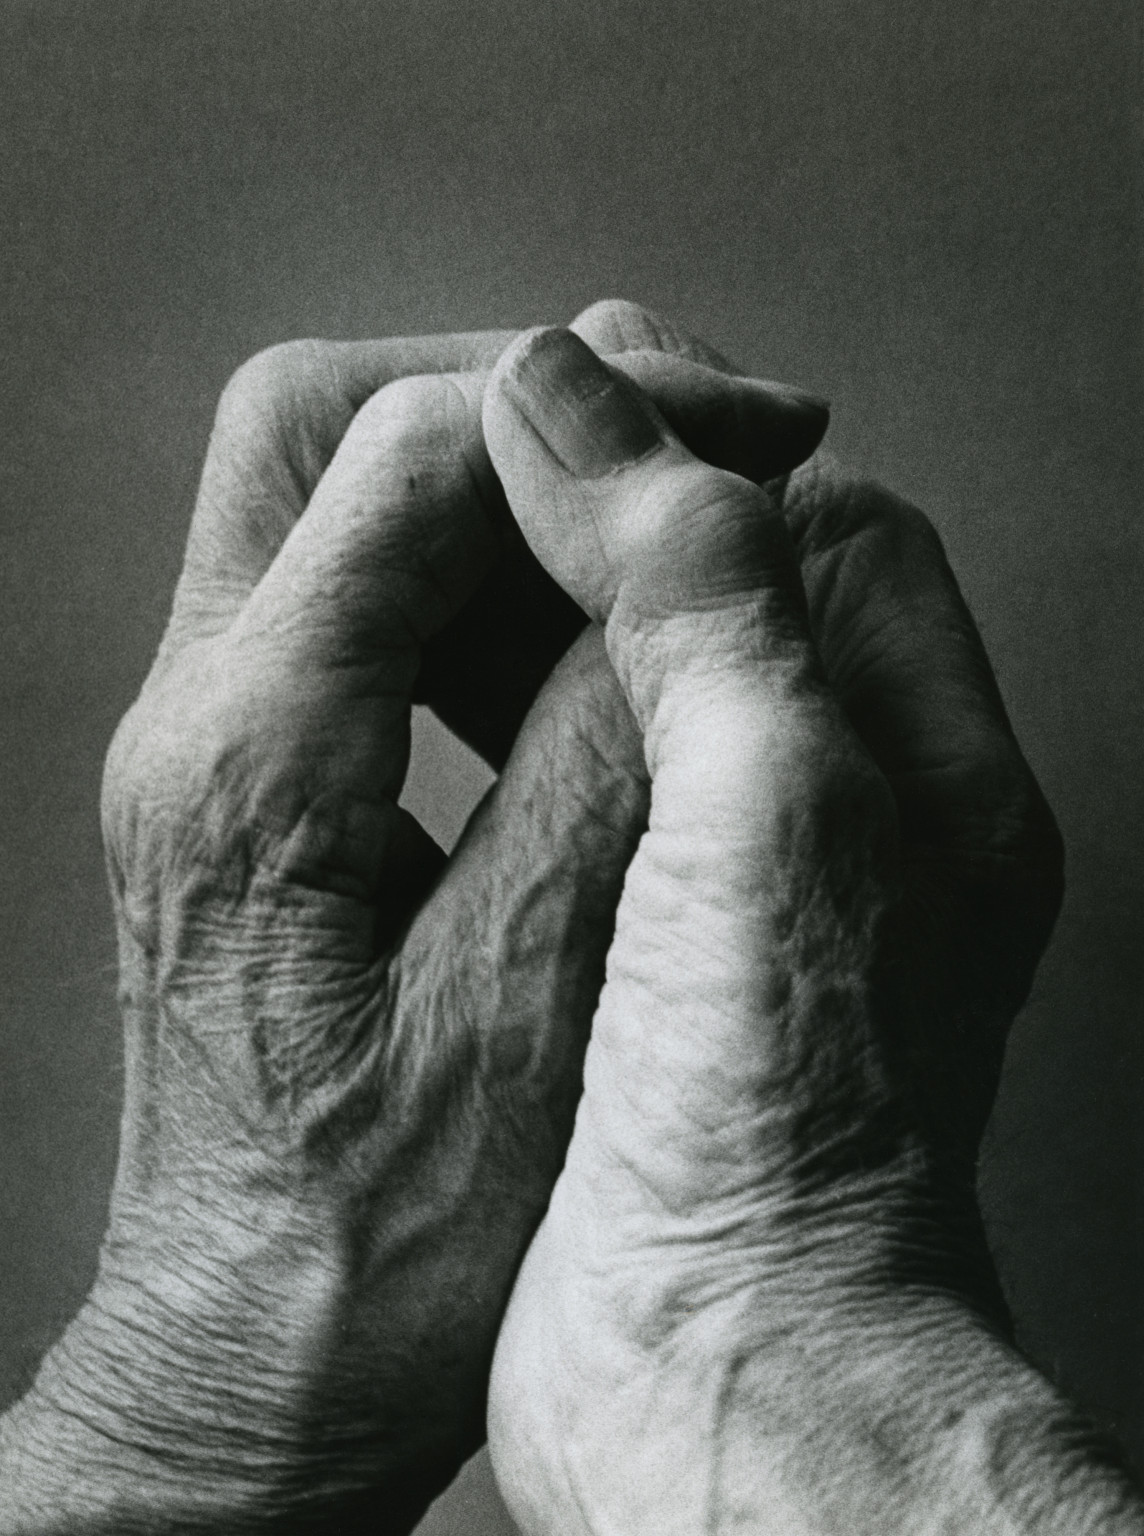 The artist's hands. This photograph is one of a large sequence taken at the request of Moore.